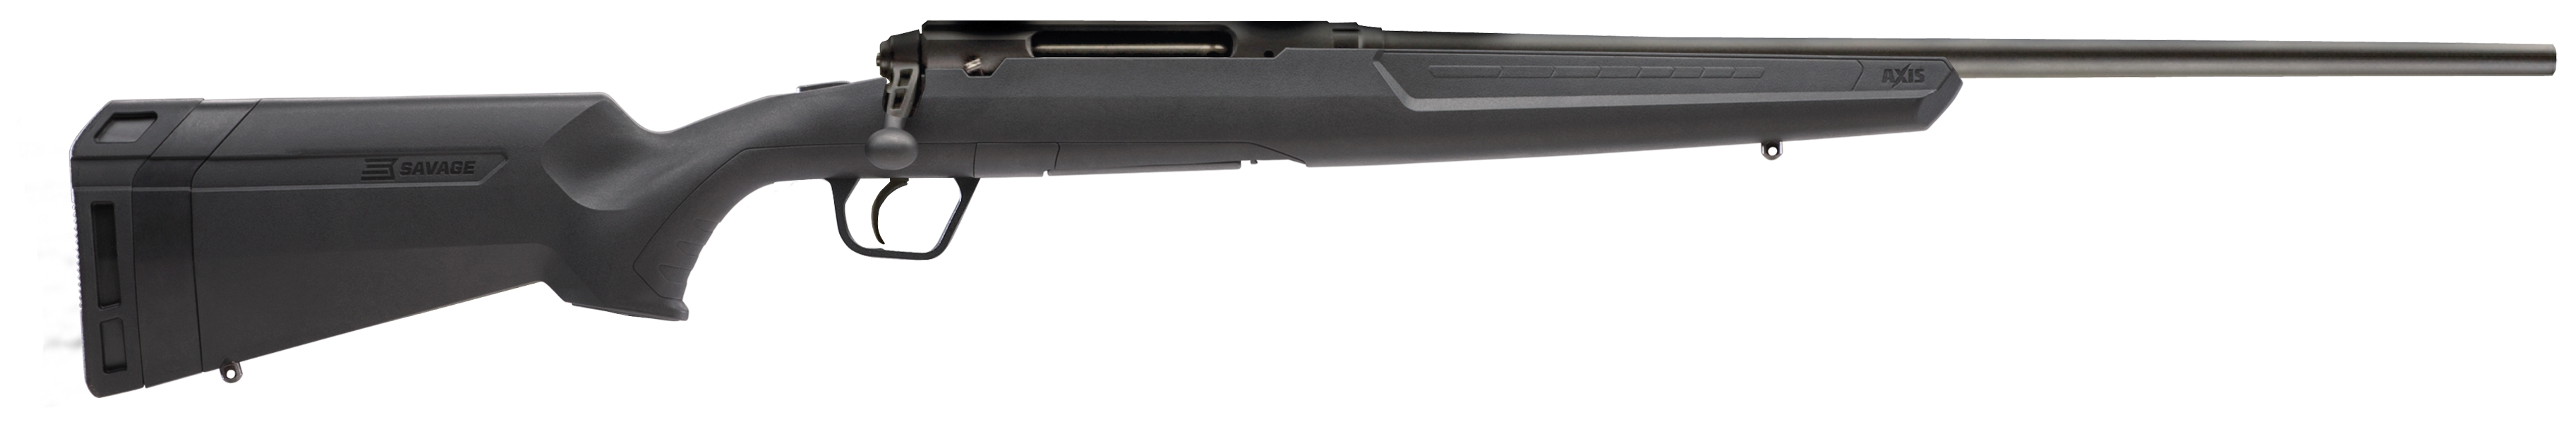 Savage Arms Axis 22-250